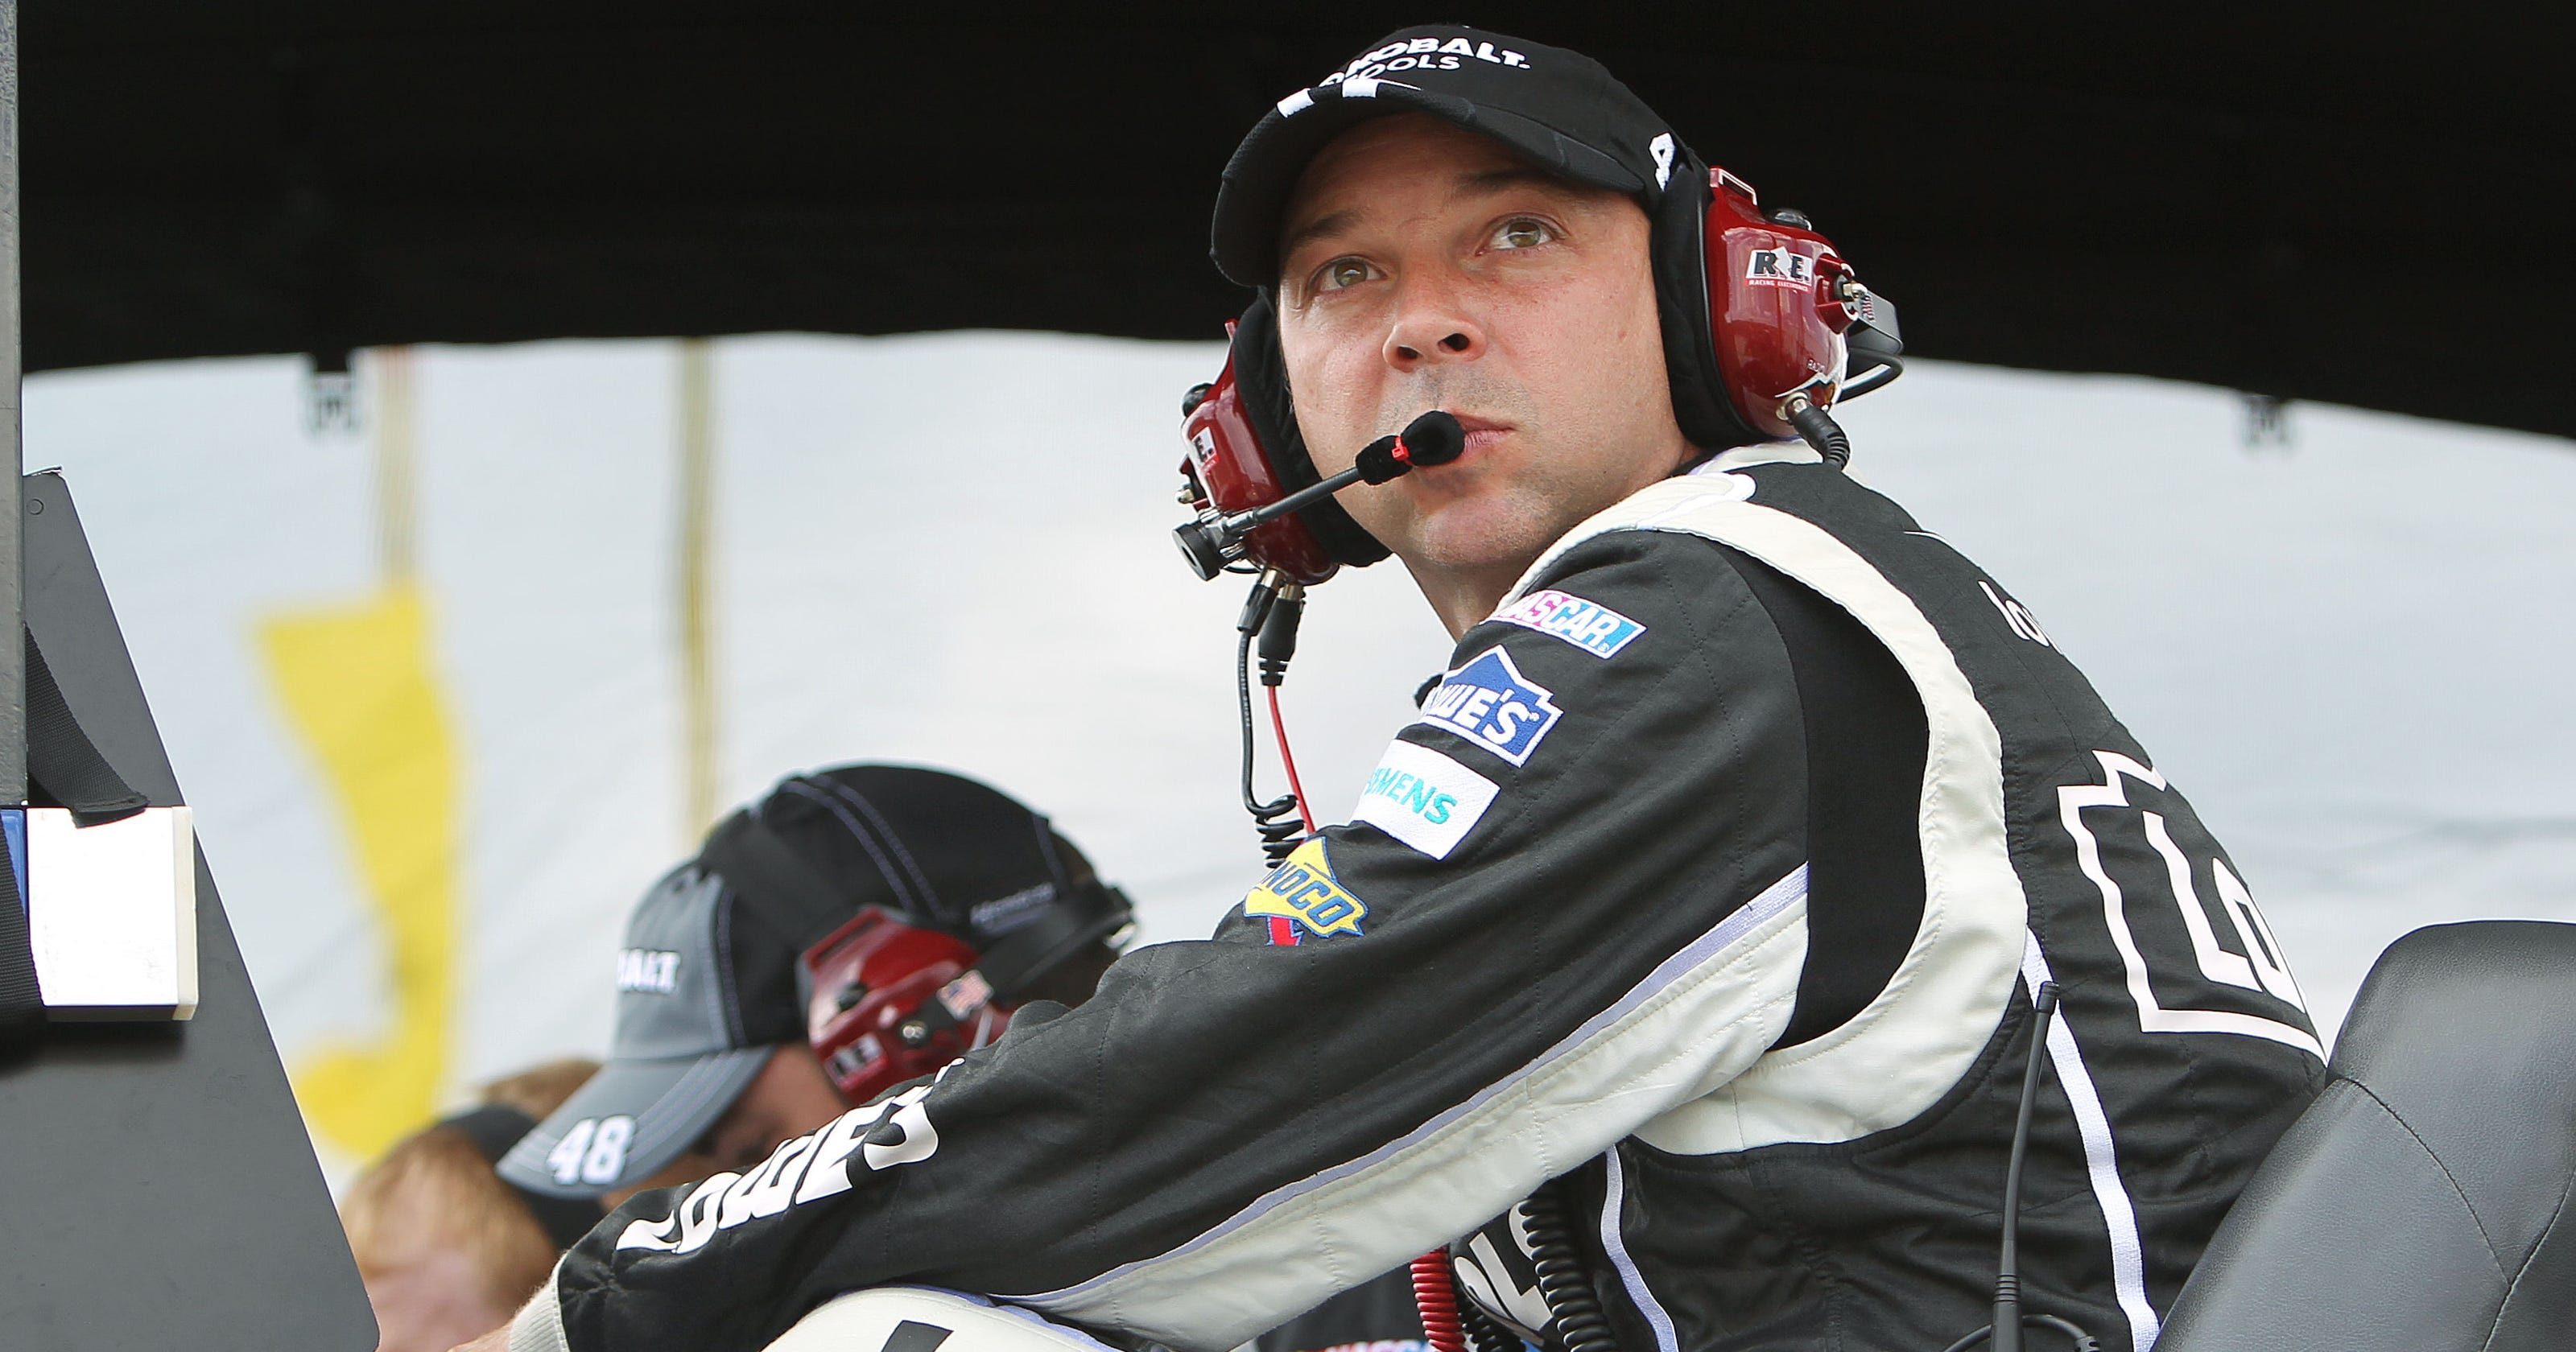 779a2a0802 Chad Knaus sacrifices to be NASCAR's top crew chief